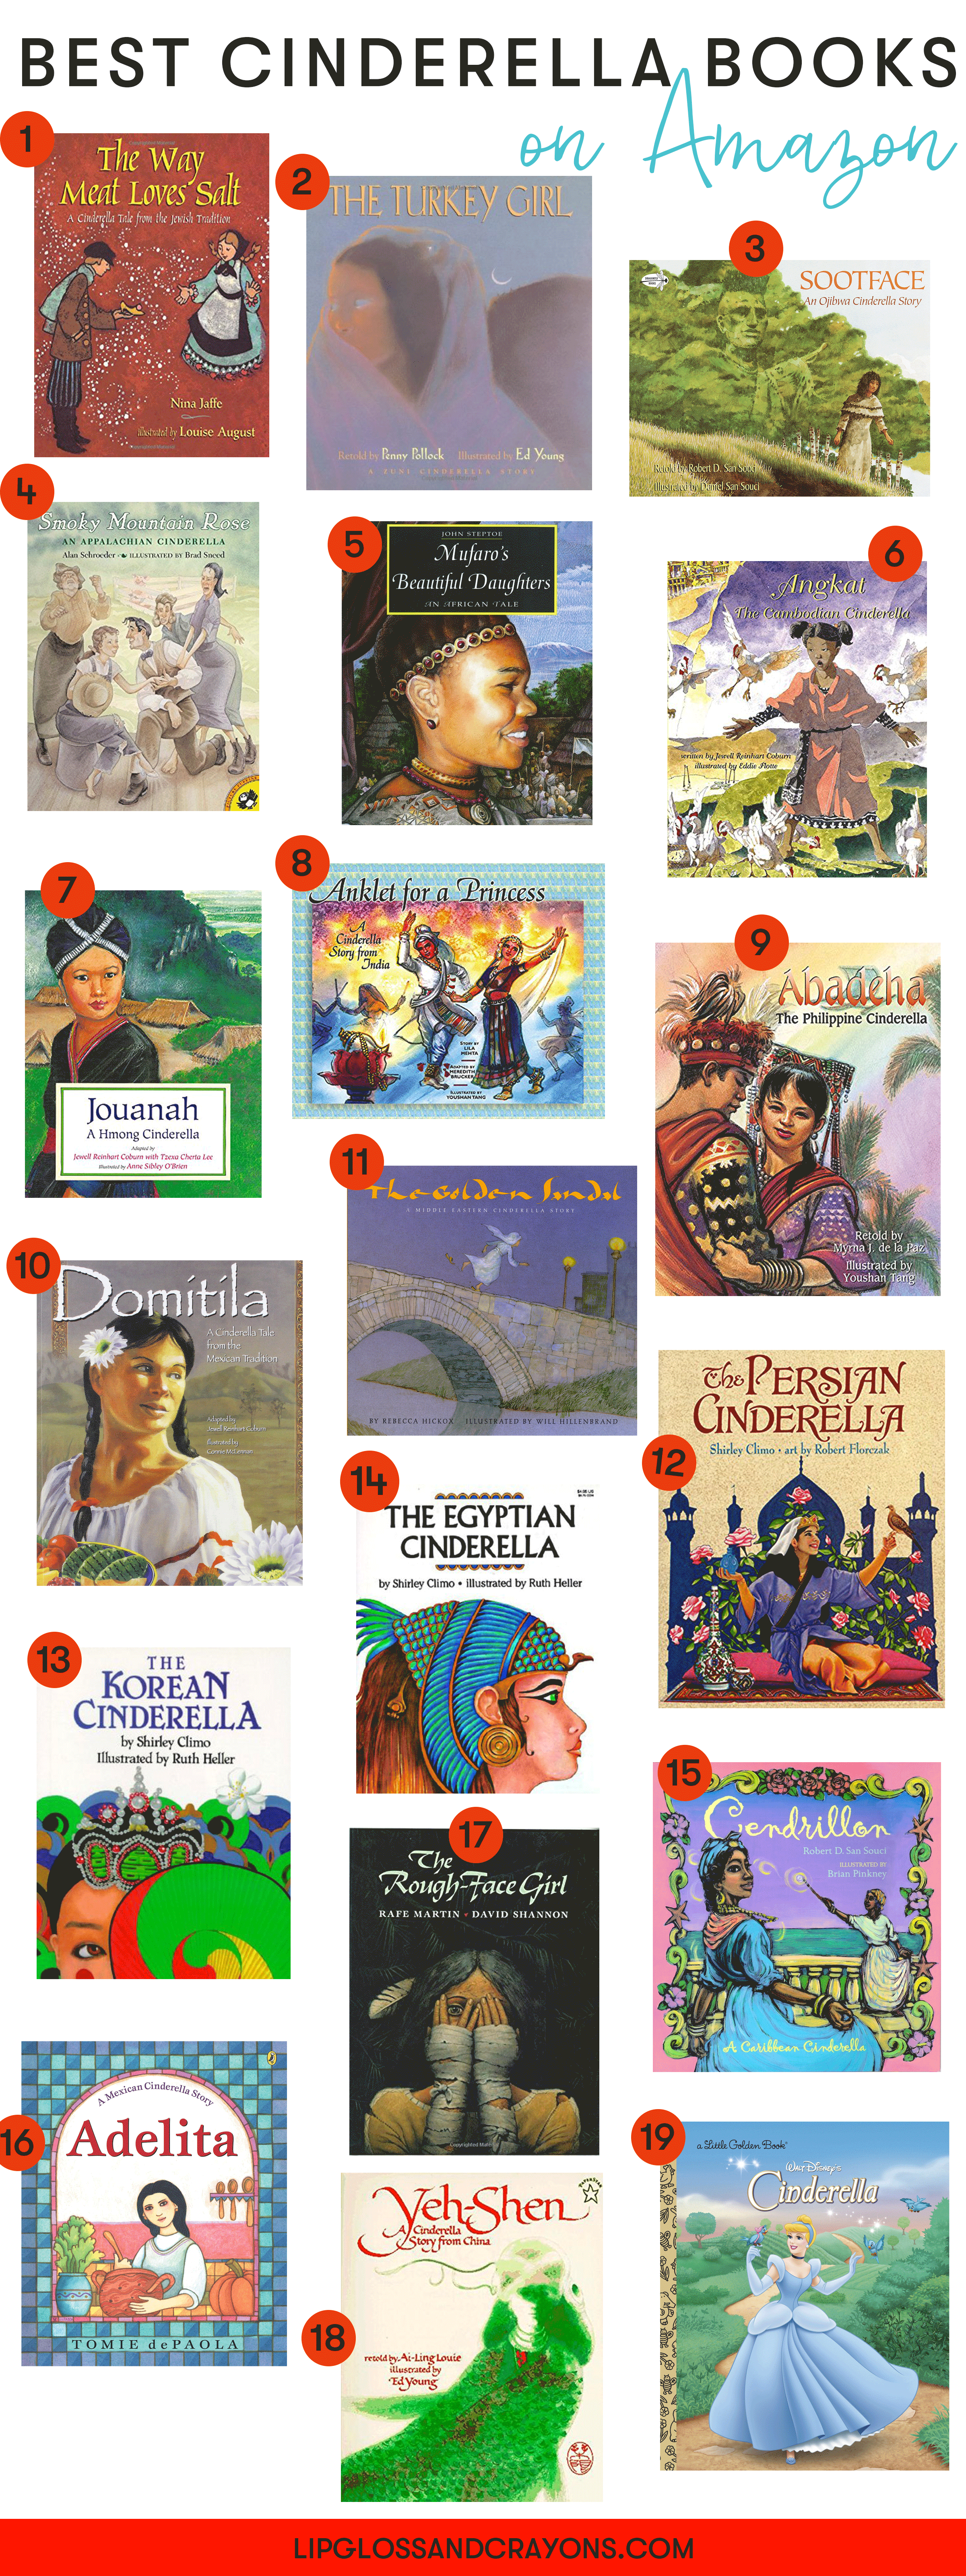 On the hunt for diverse books for kids? This list of Cinderella books reflects 19 different cultures and countries and is a great place to start!